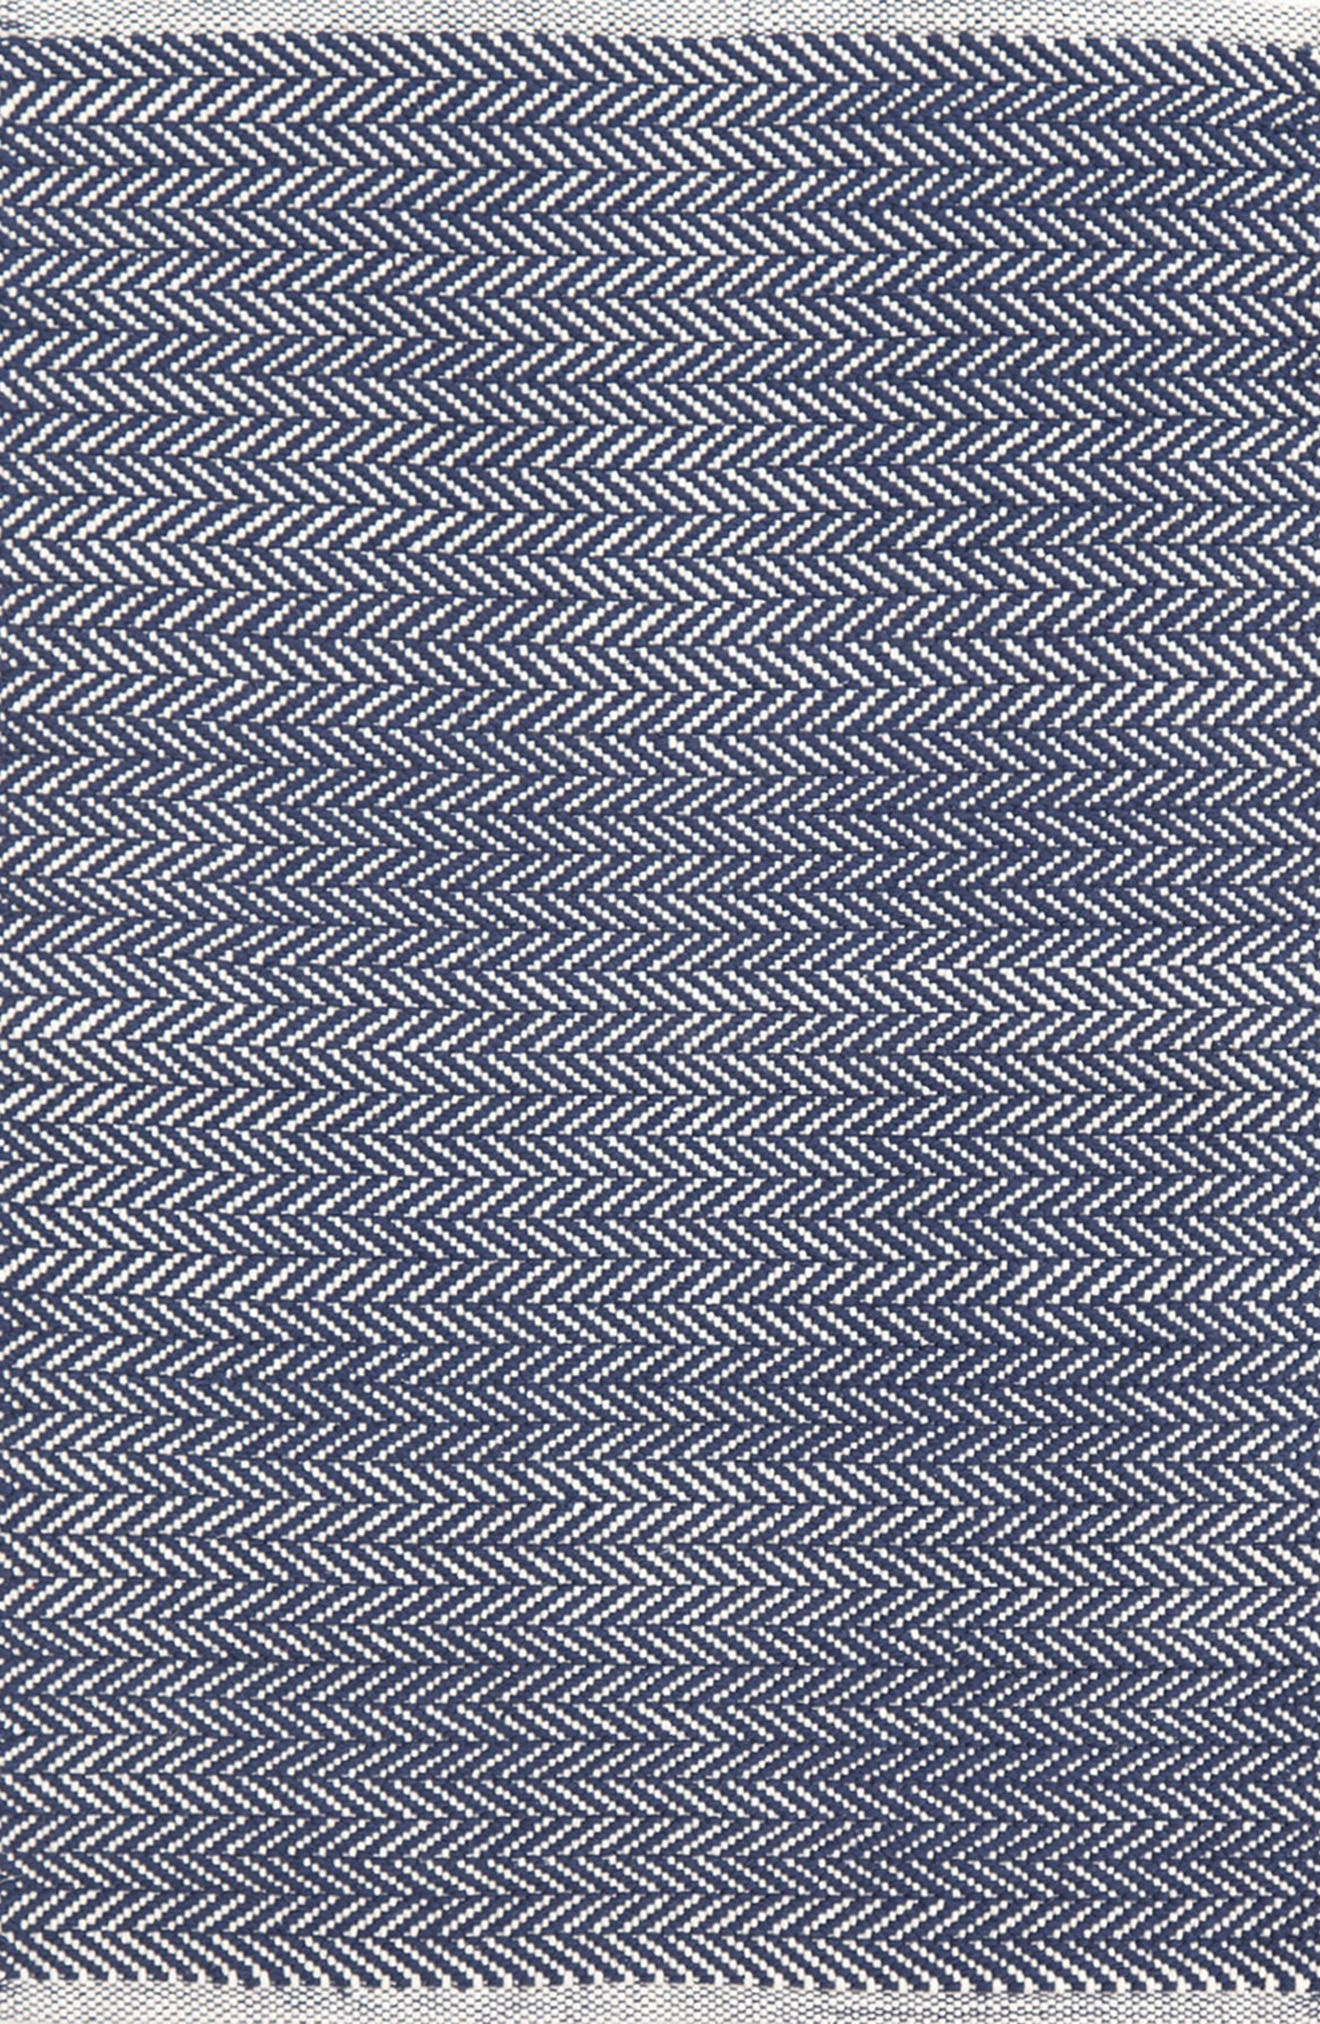 Dash & Albert Herringbone Indoor/Outdoor Rug